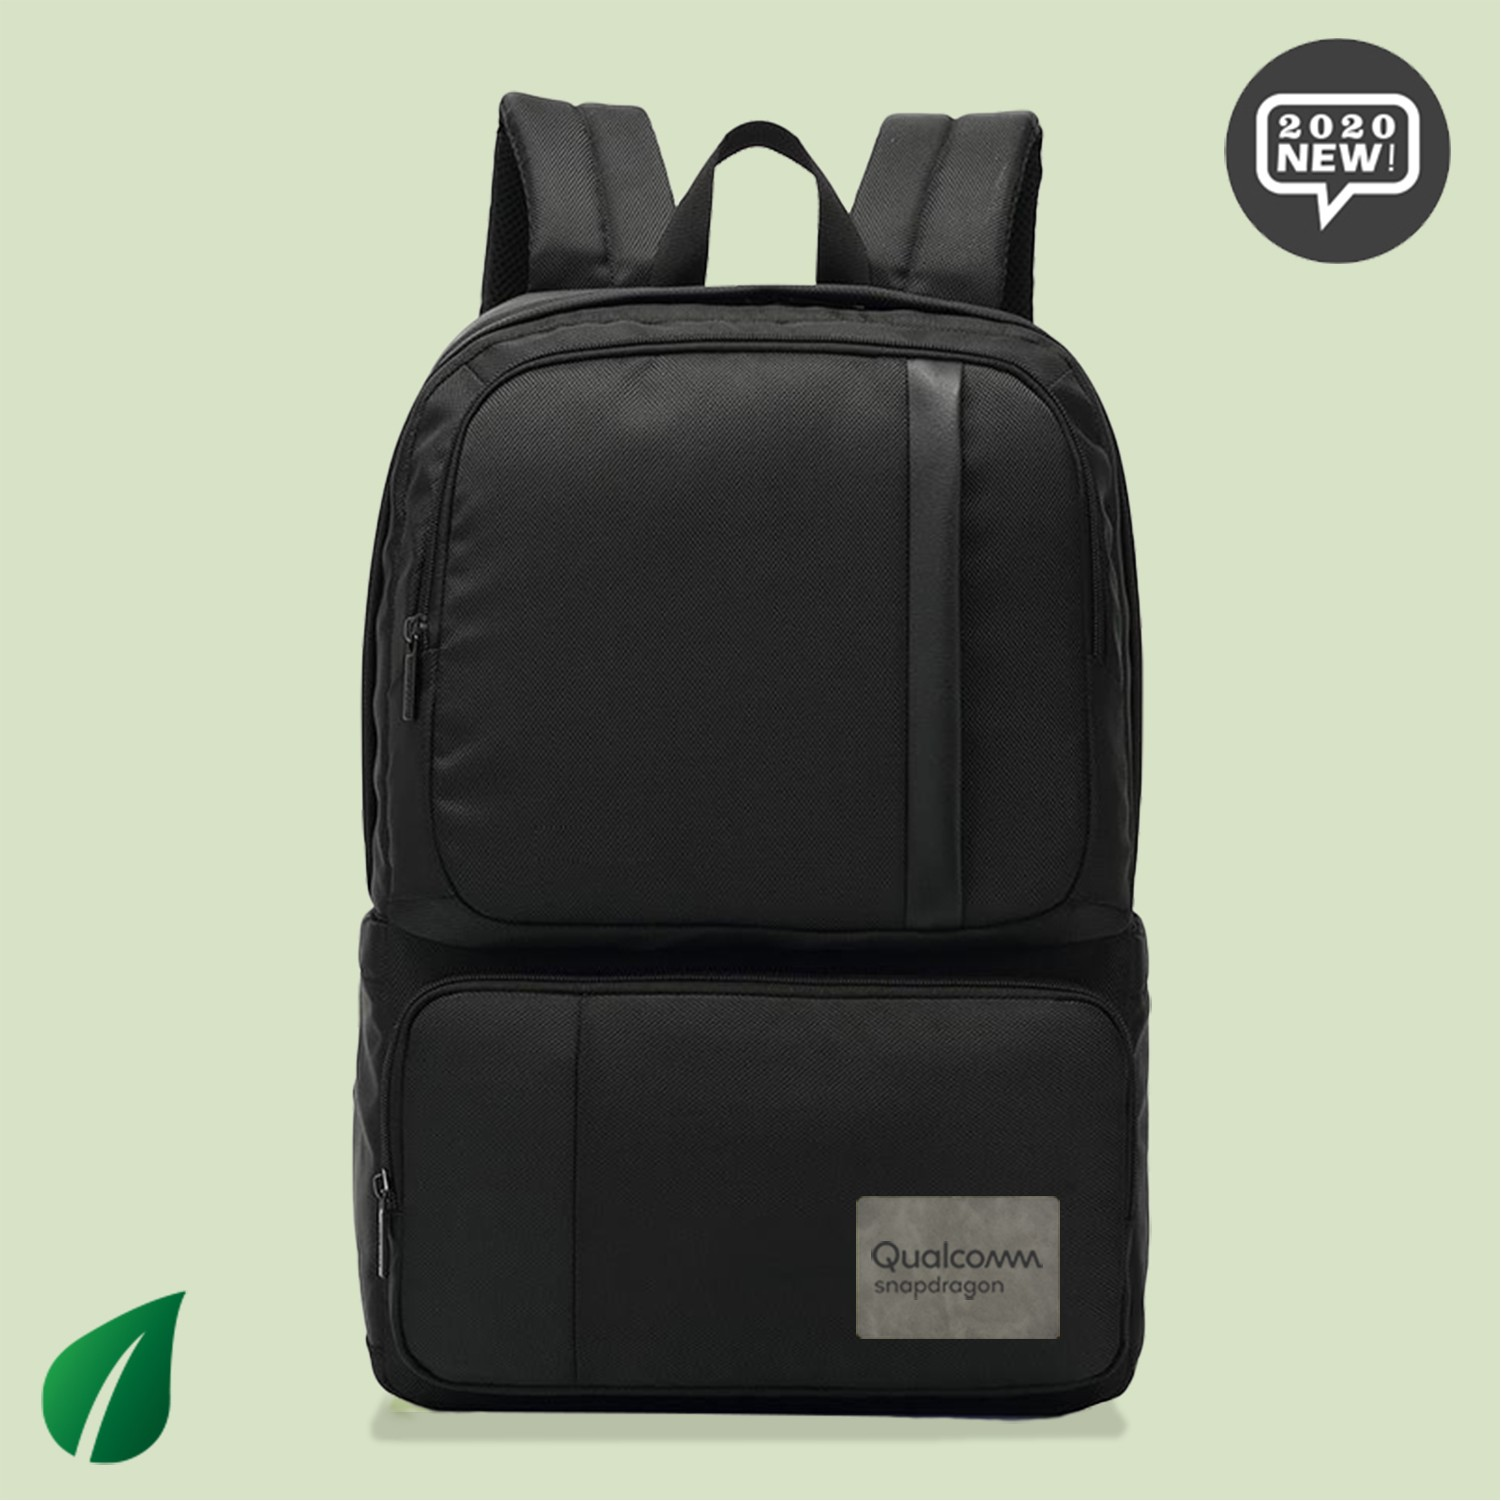 eco-friendly backpack